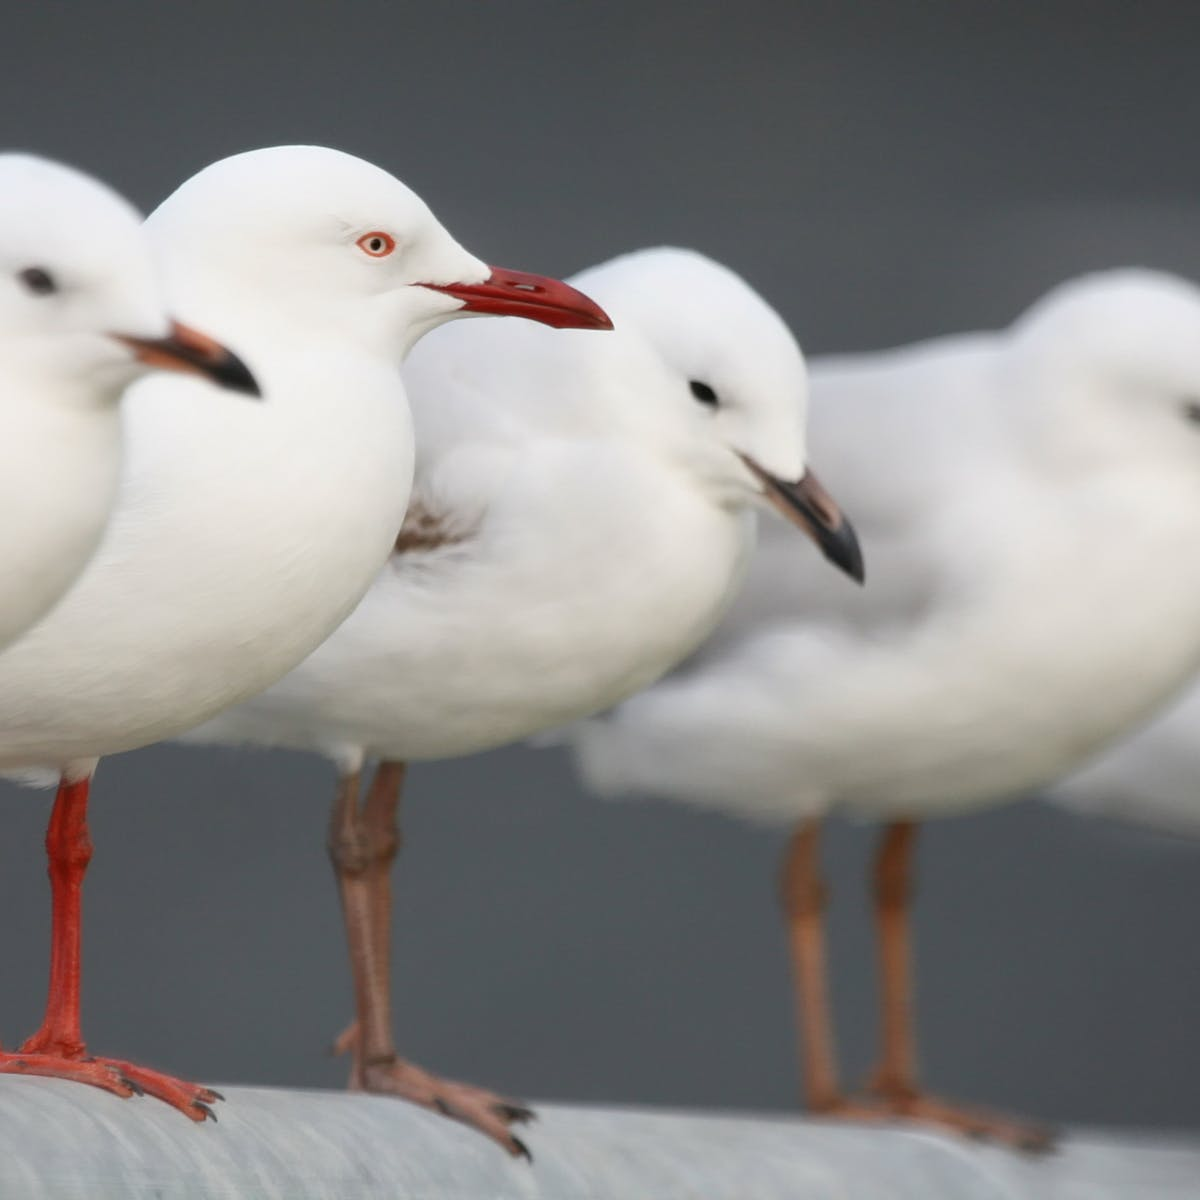 Curious Kids: Where do seagulls go when they die and why don't we